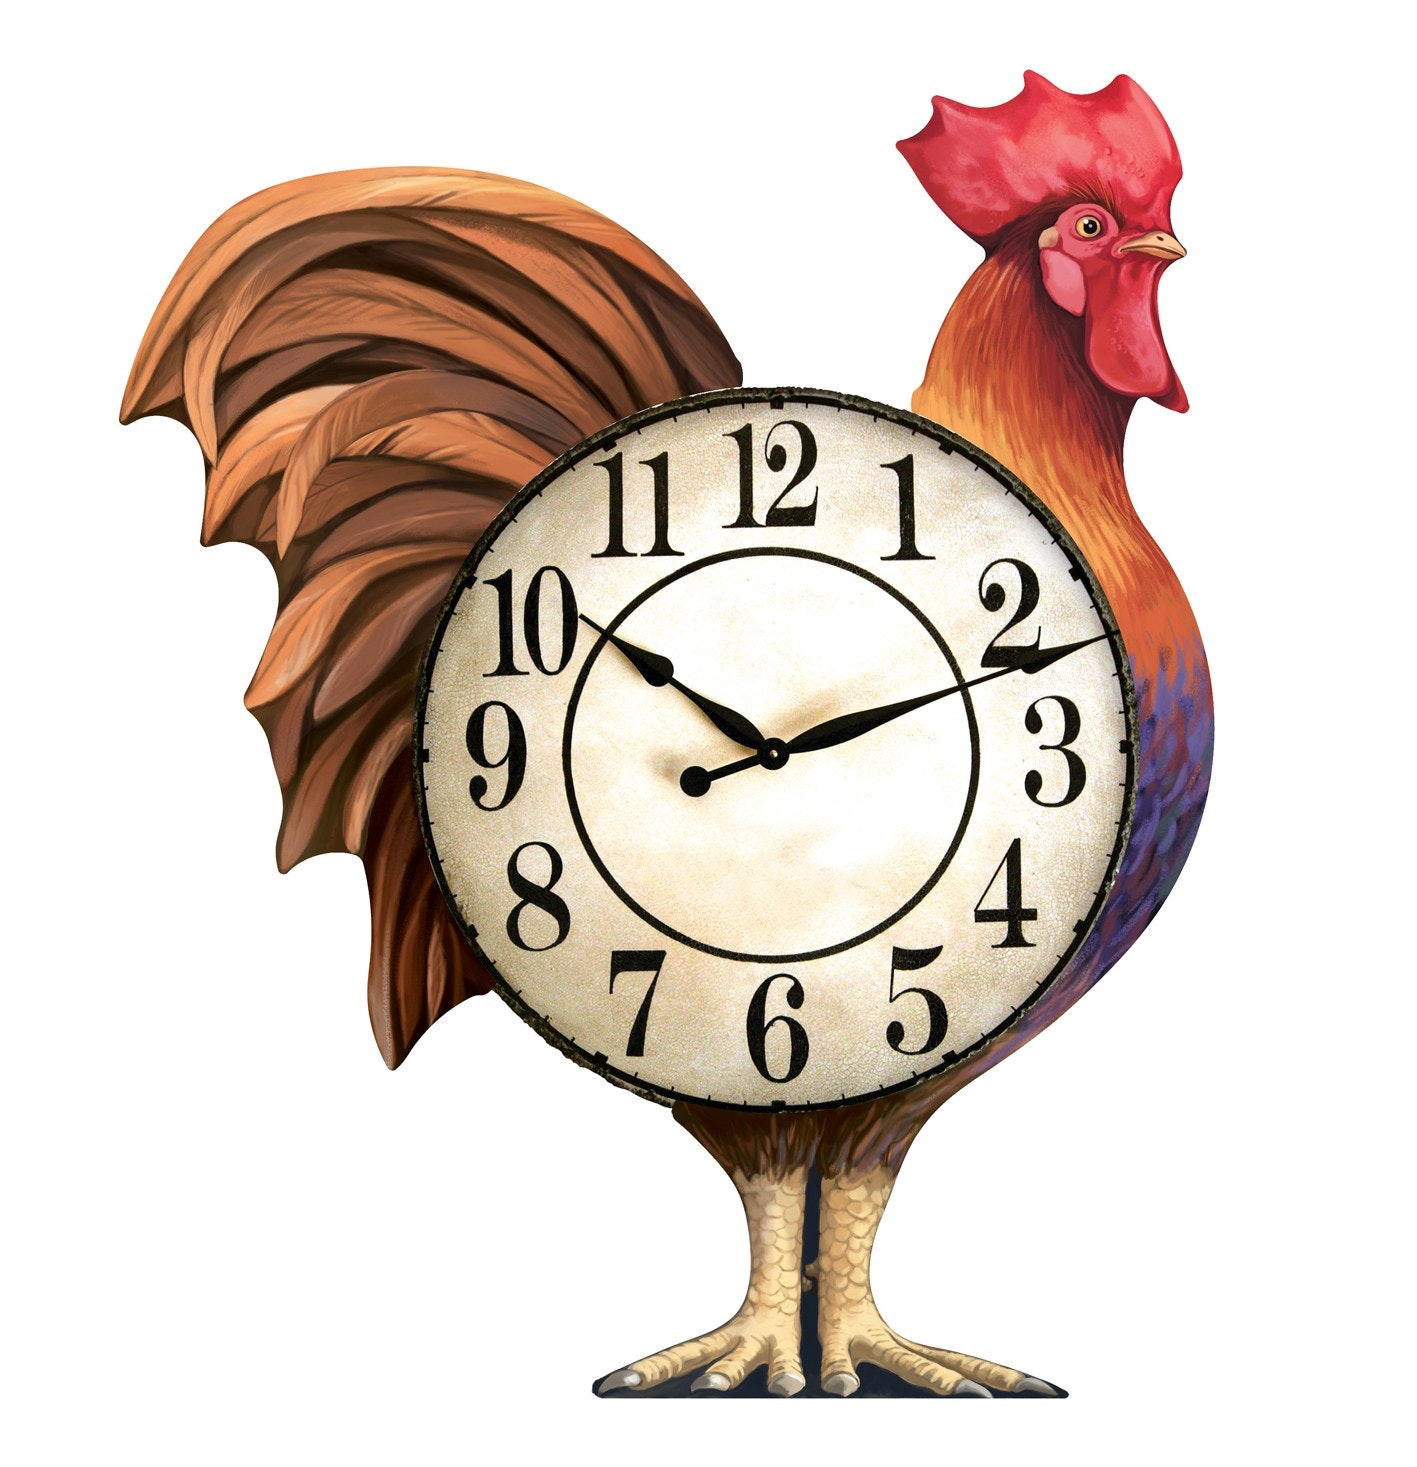 Rooster clock illustration